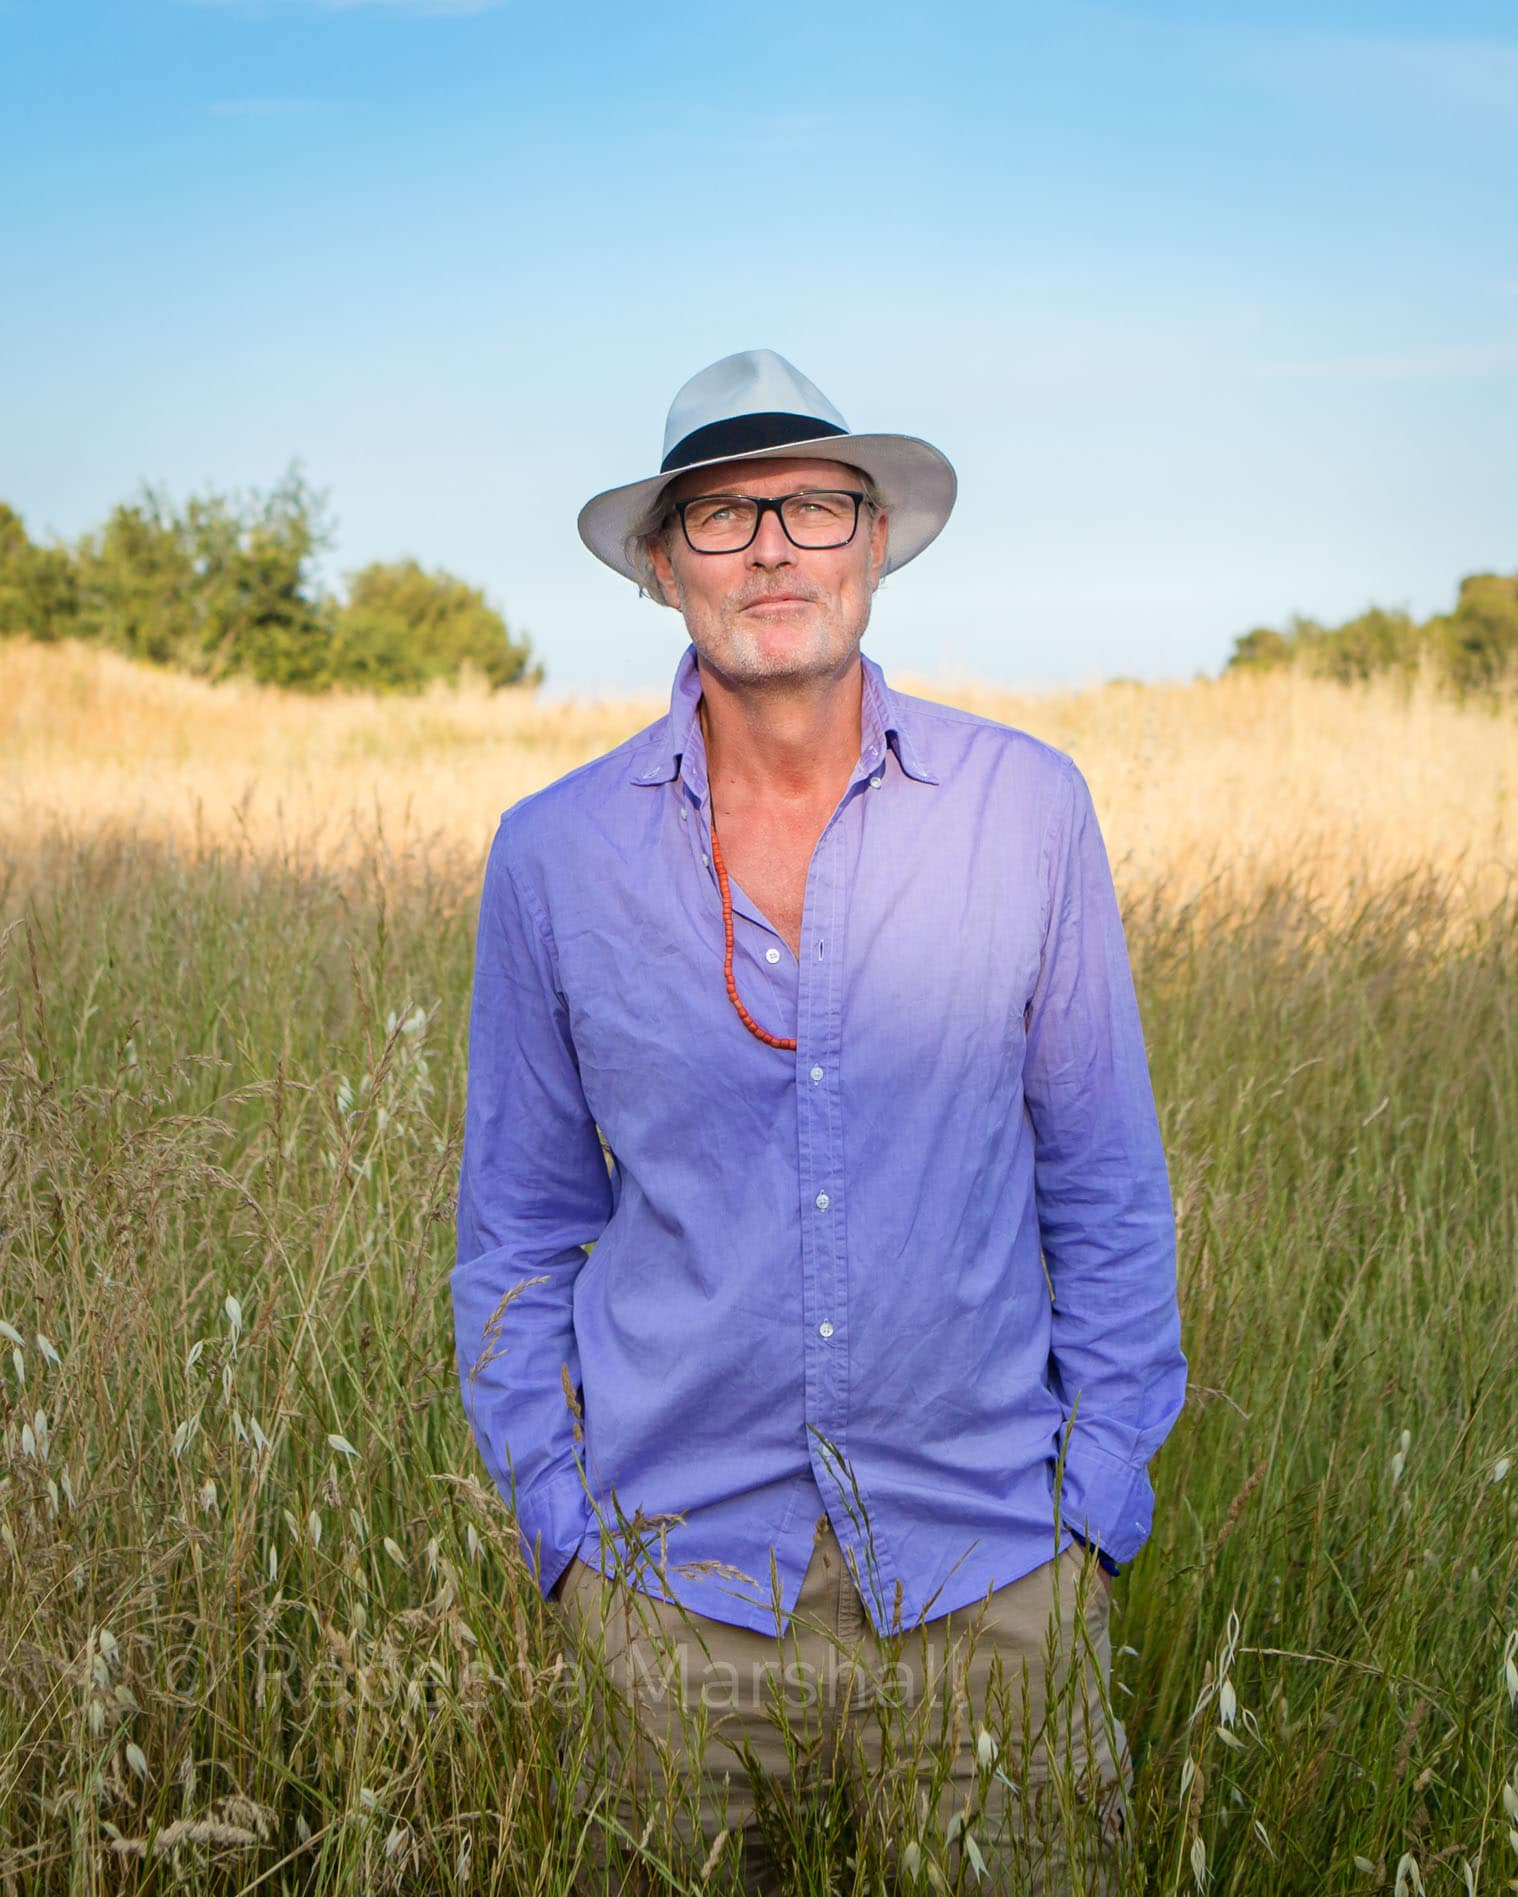 Photographic portrait of a man standing in a cornfield in a white hat and purple shirt